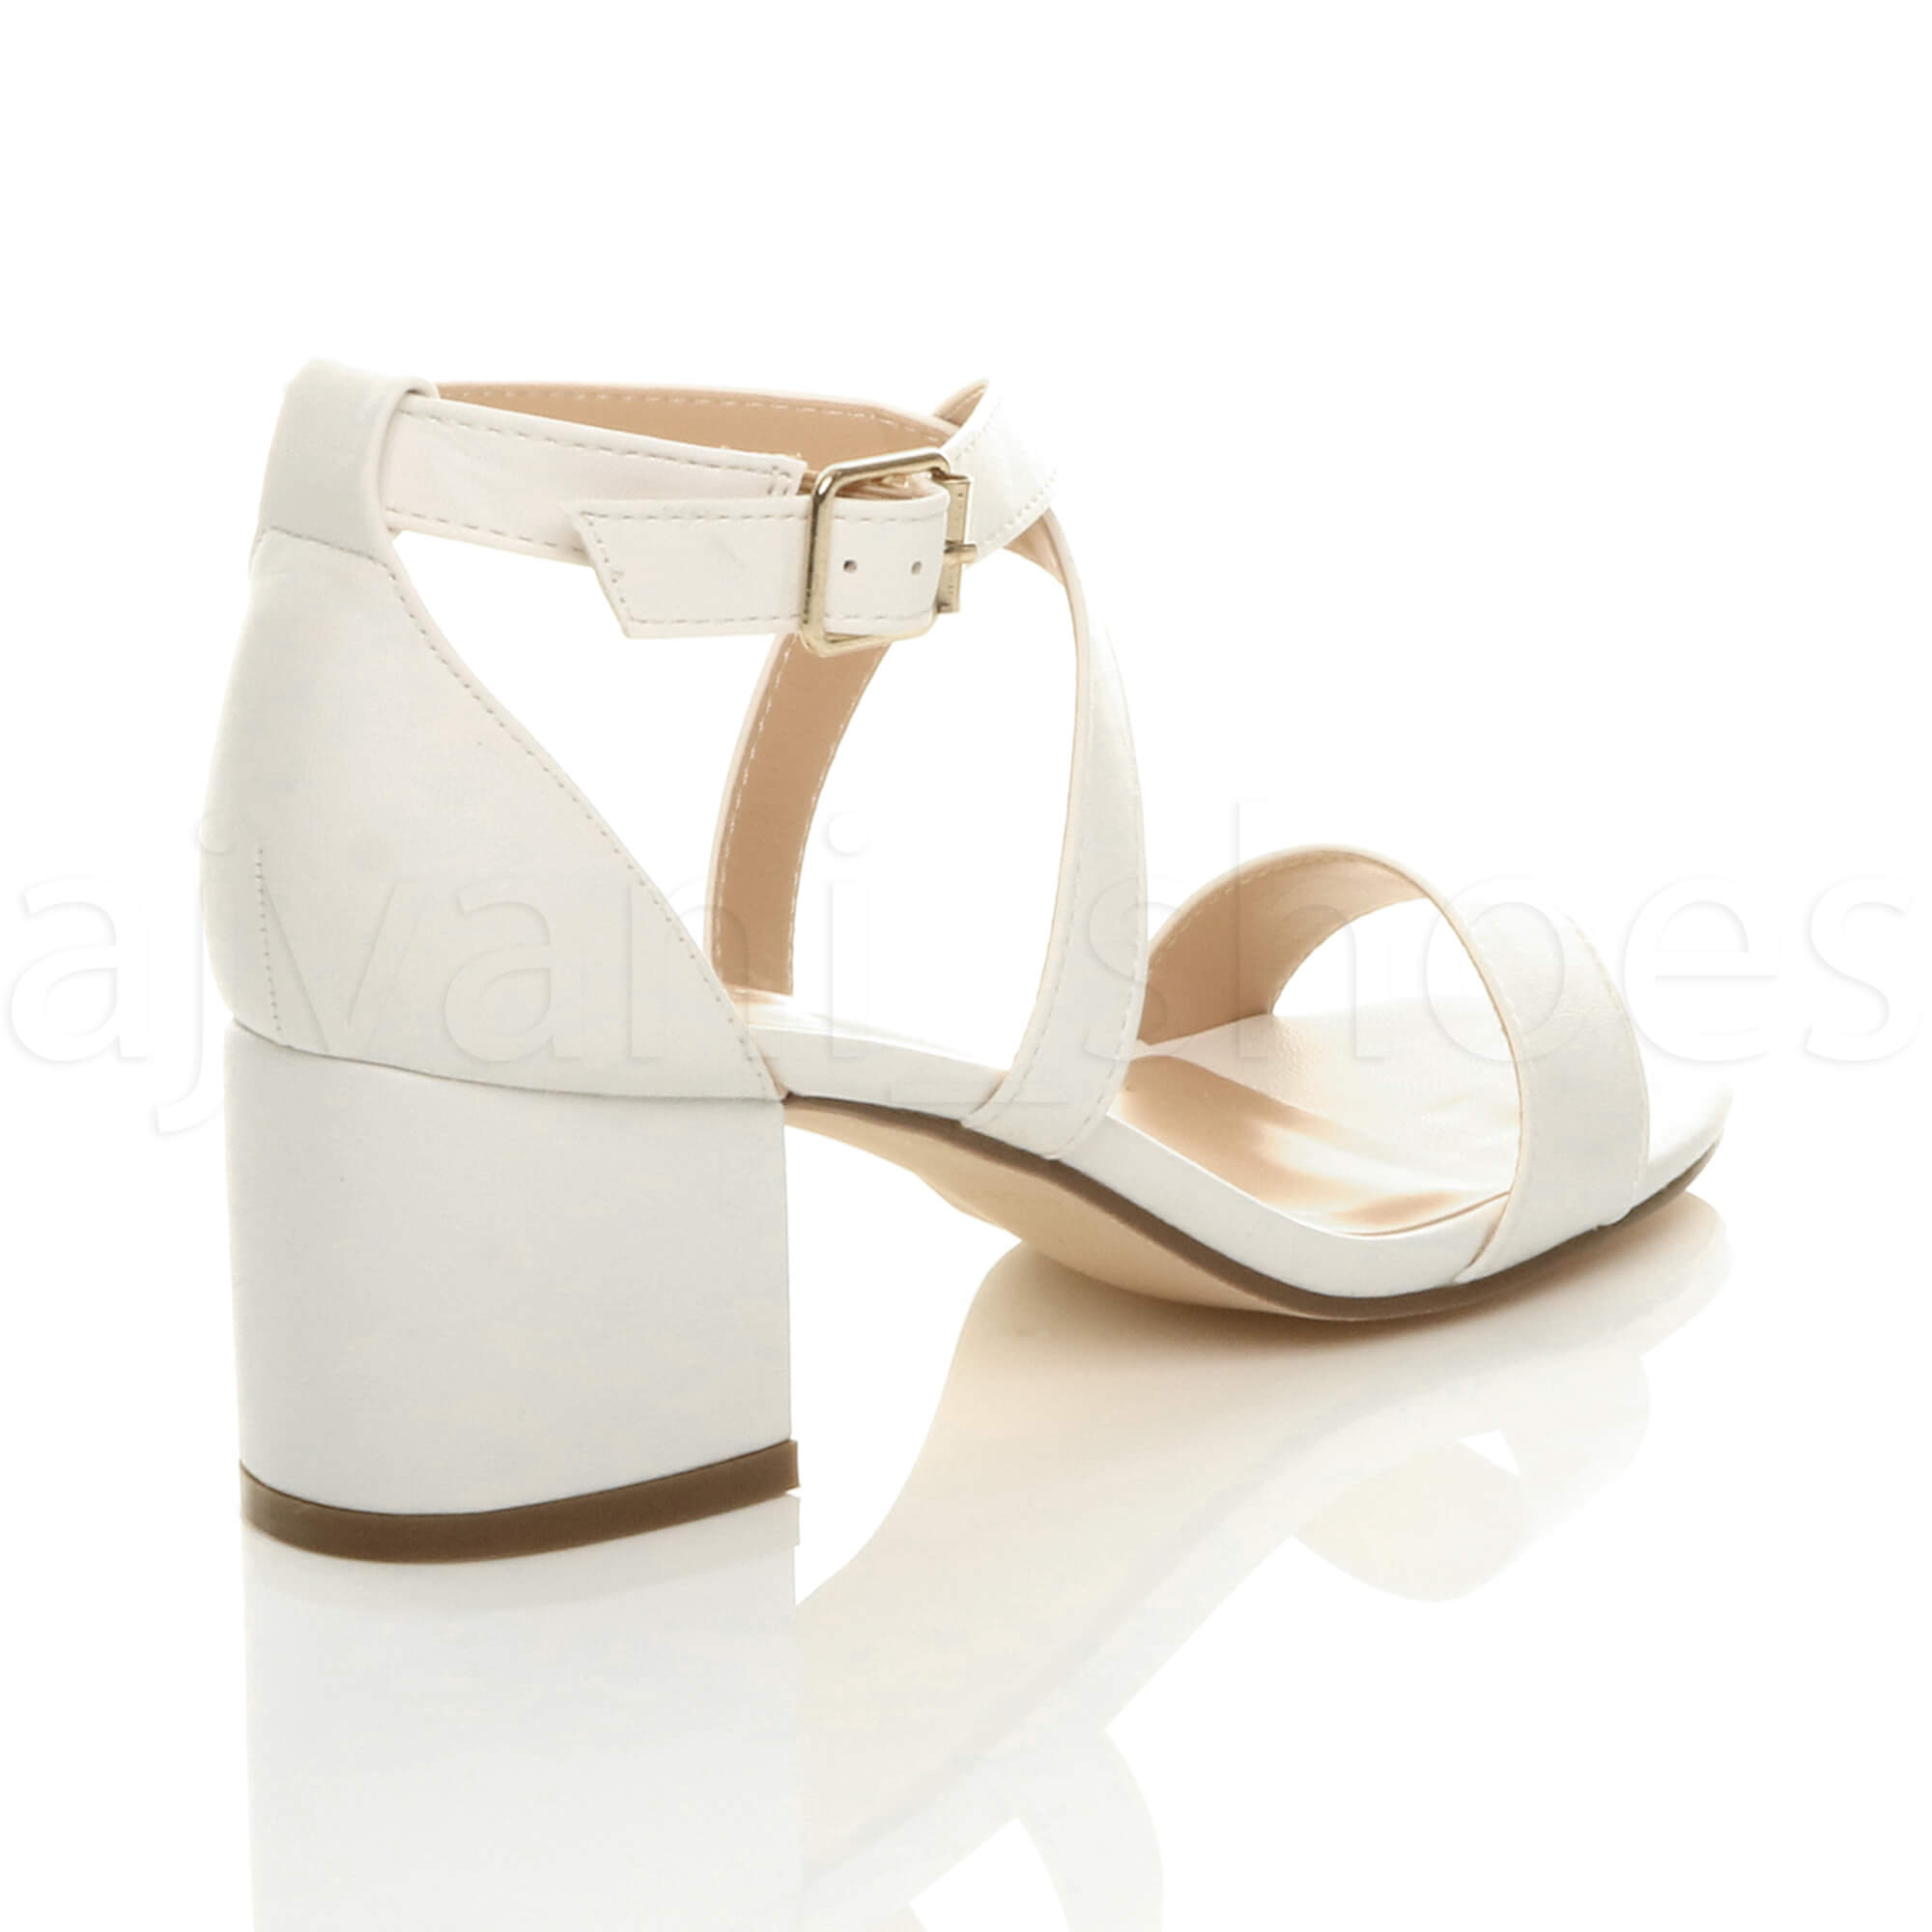 WOMENS-LADIES-MID-LOW-BLOCK-HEEL-CROSS-STRAPS-PARTY-STRAPPY-SANDALS-SHOES-SIZE thumbnail 100